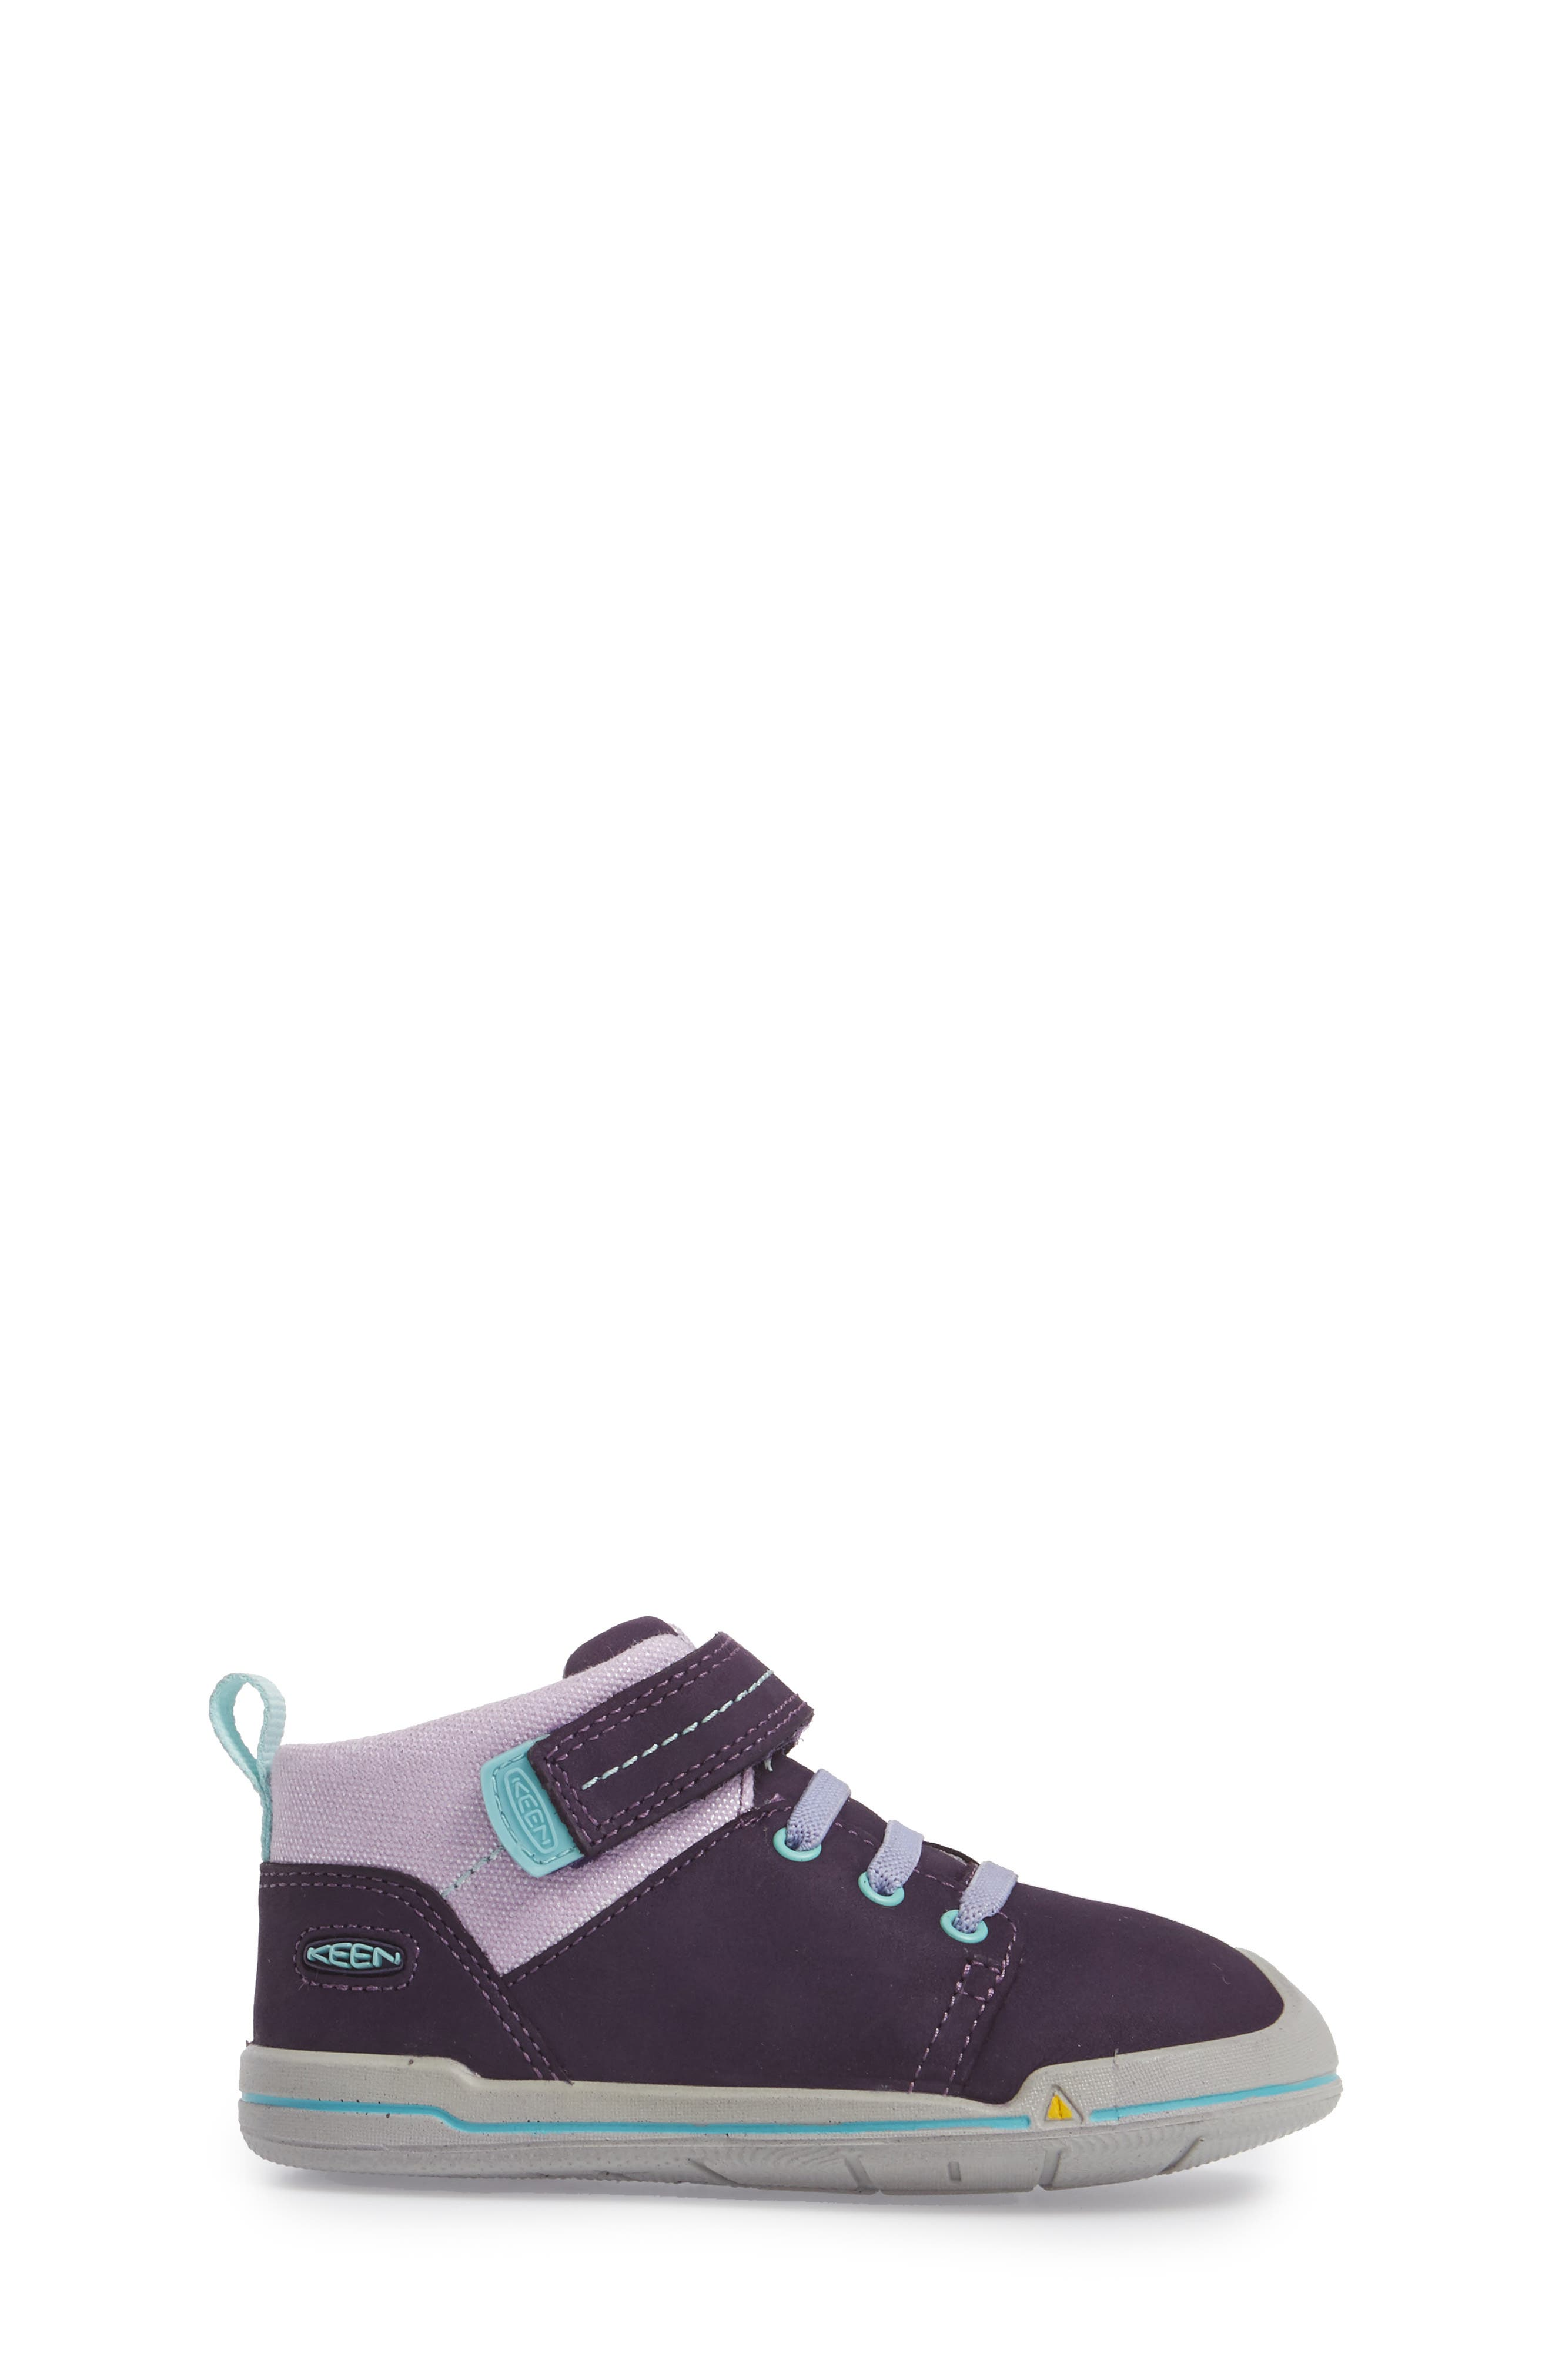 Sprout Mid Sneaker,                             Alternate thumbnail 3, color,                             Purple / Sweet Lavender